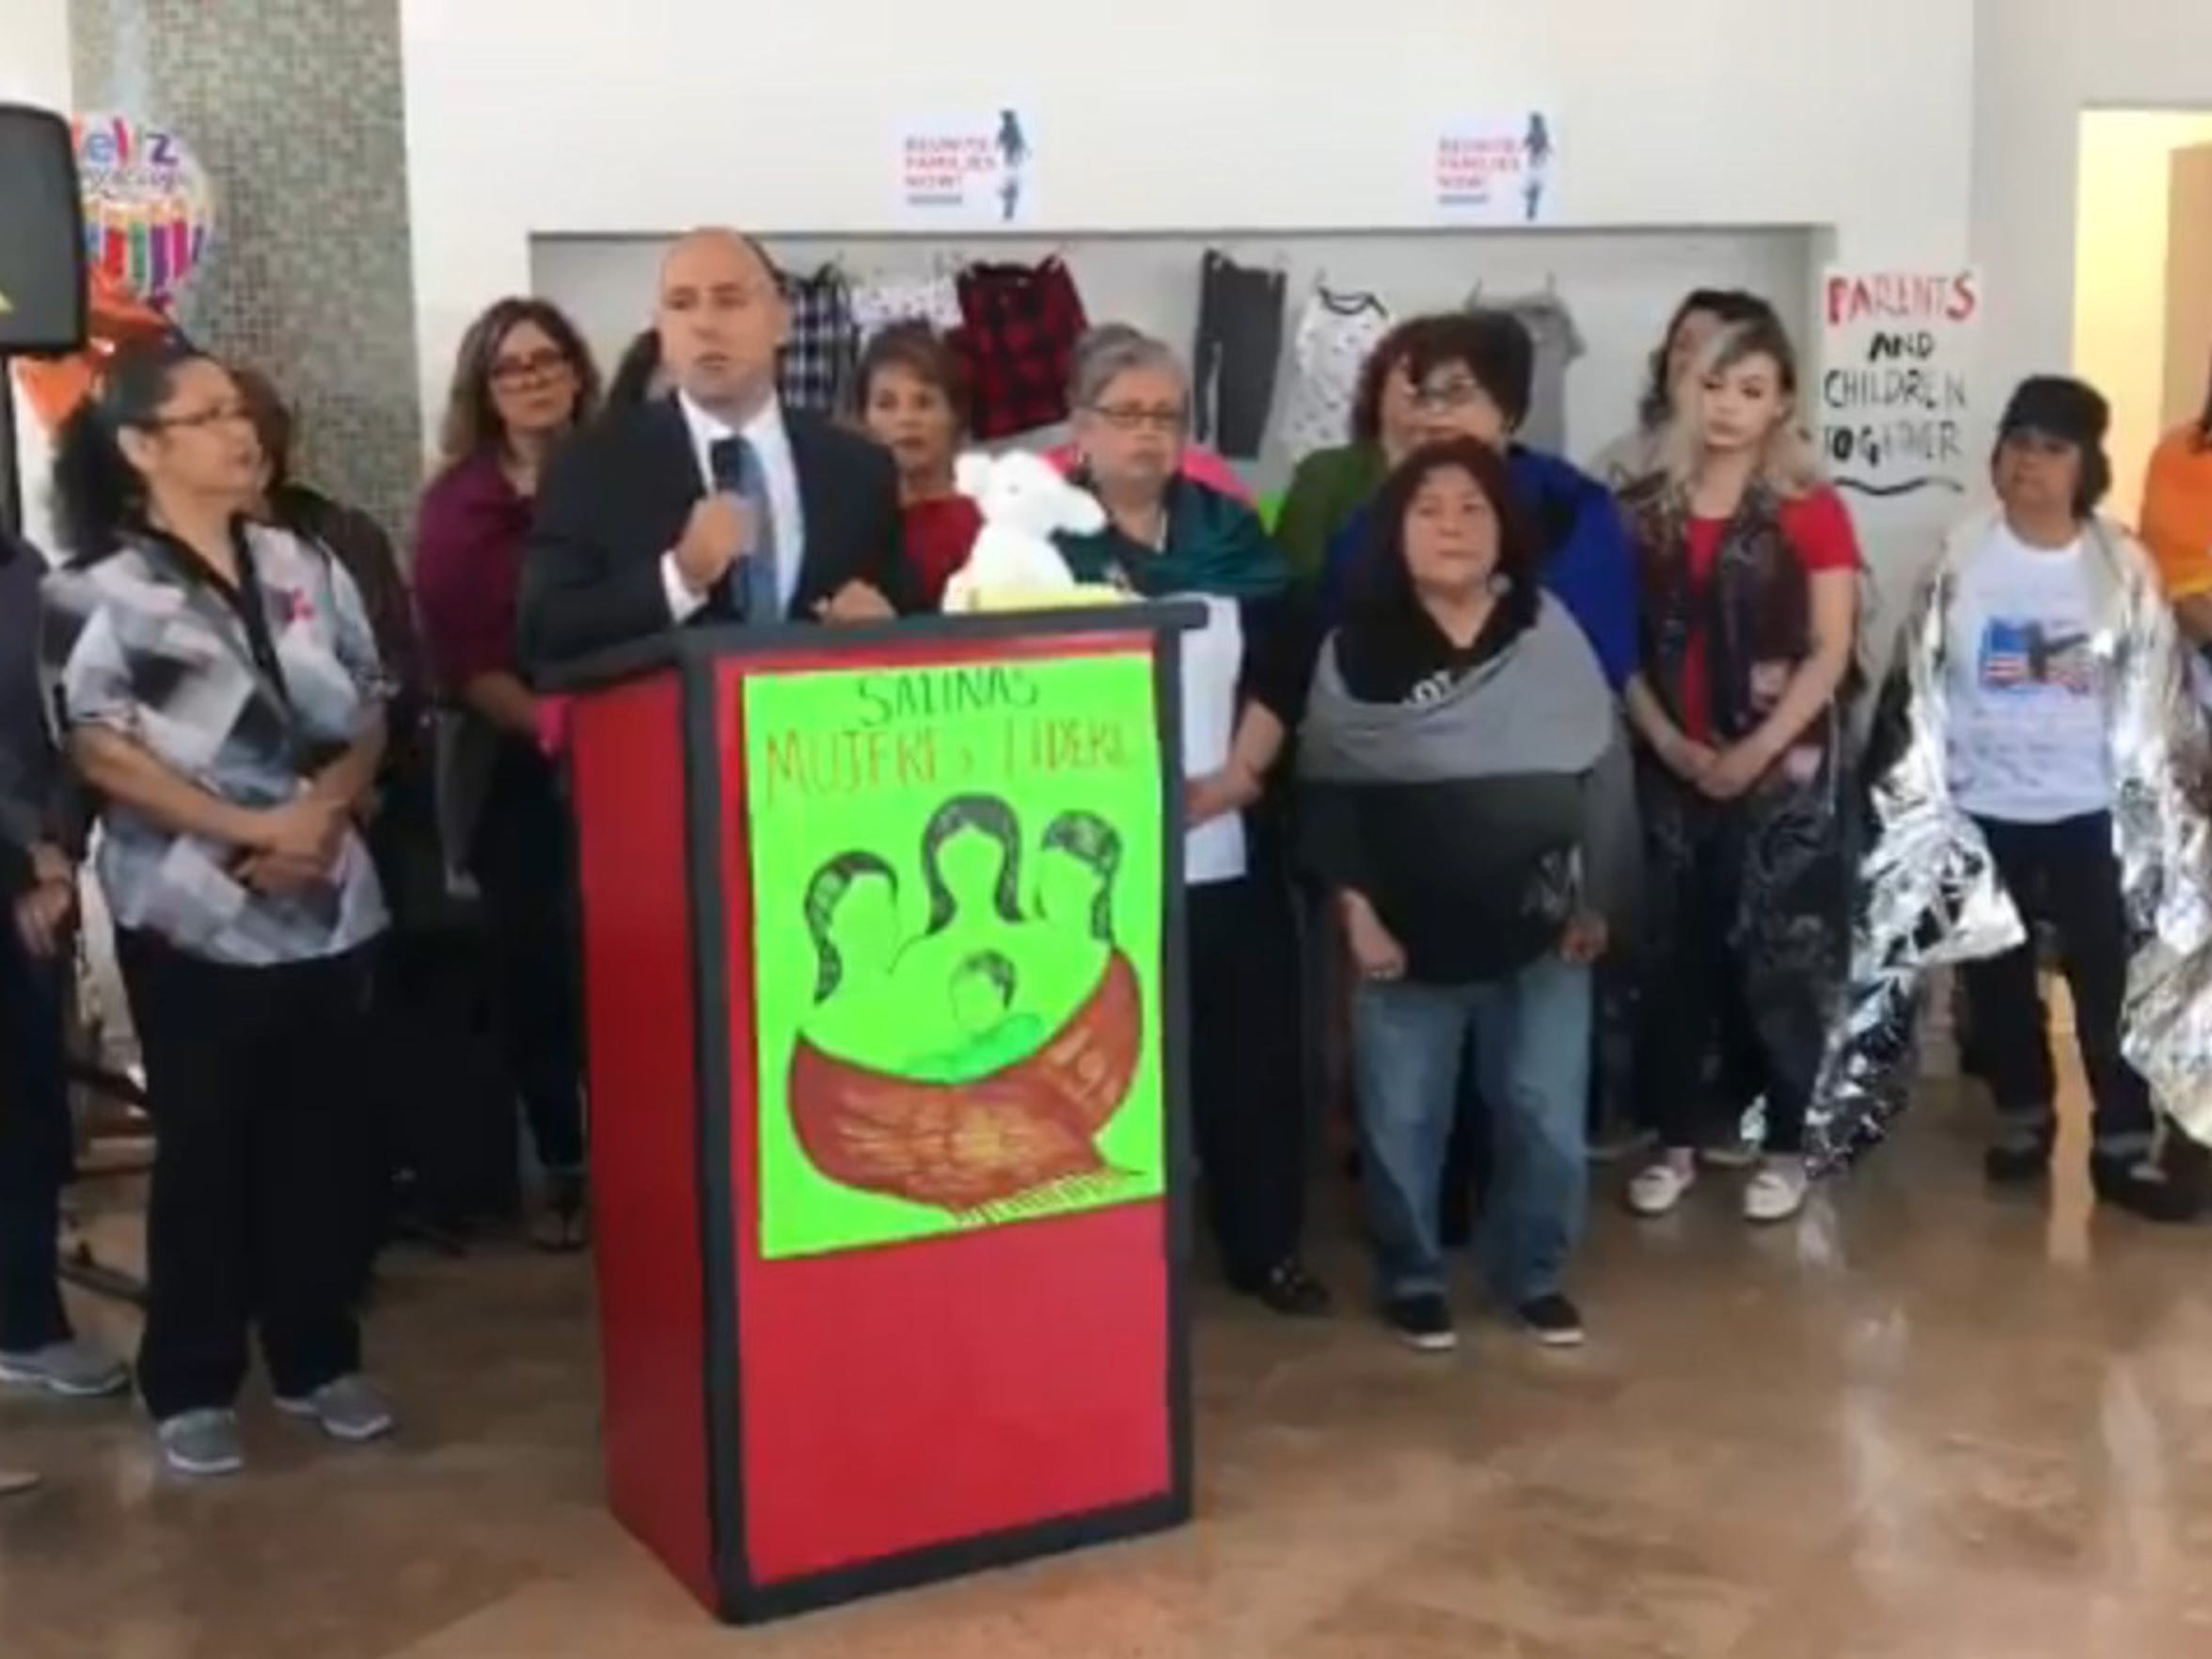 Rep. Jimmy Panetta and other local leaders speak in Salinas against the Trump administration's border policies.